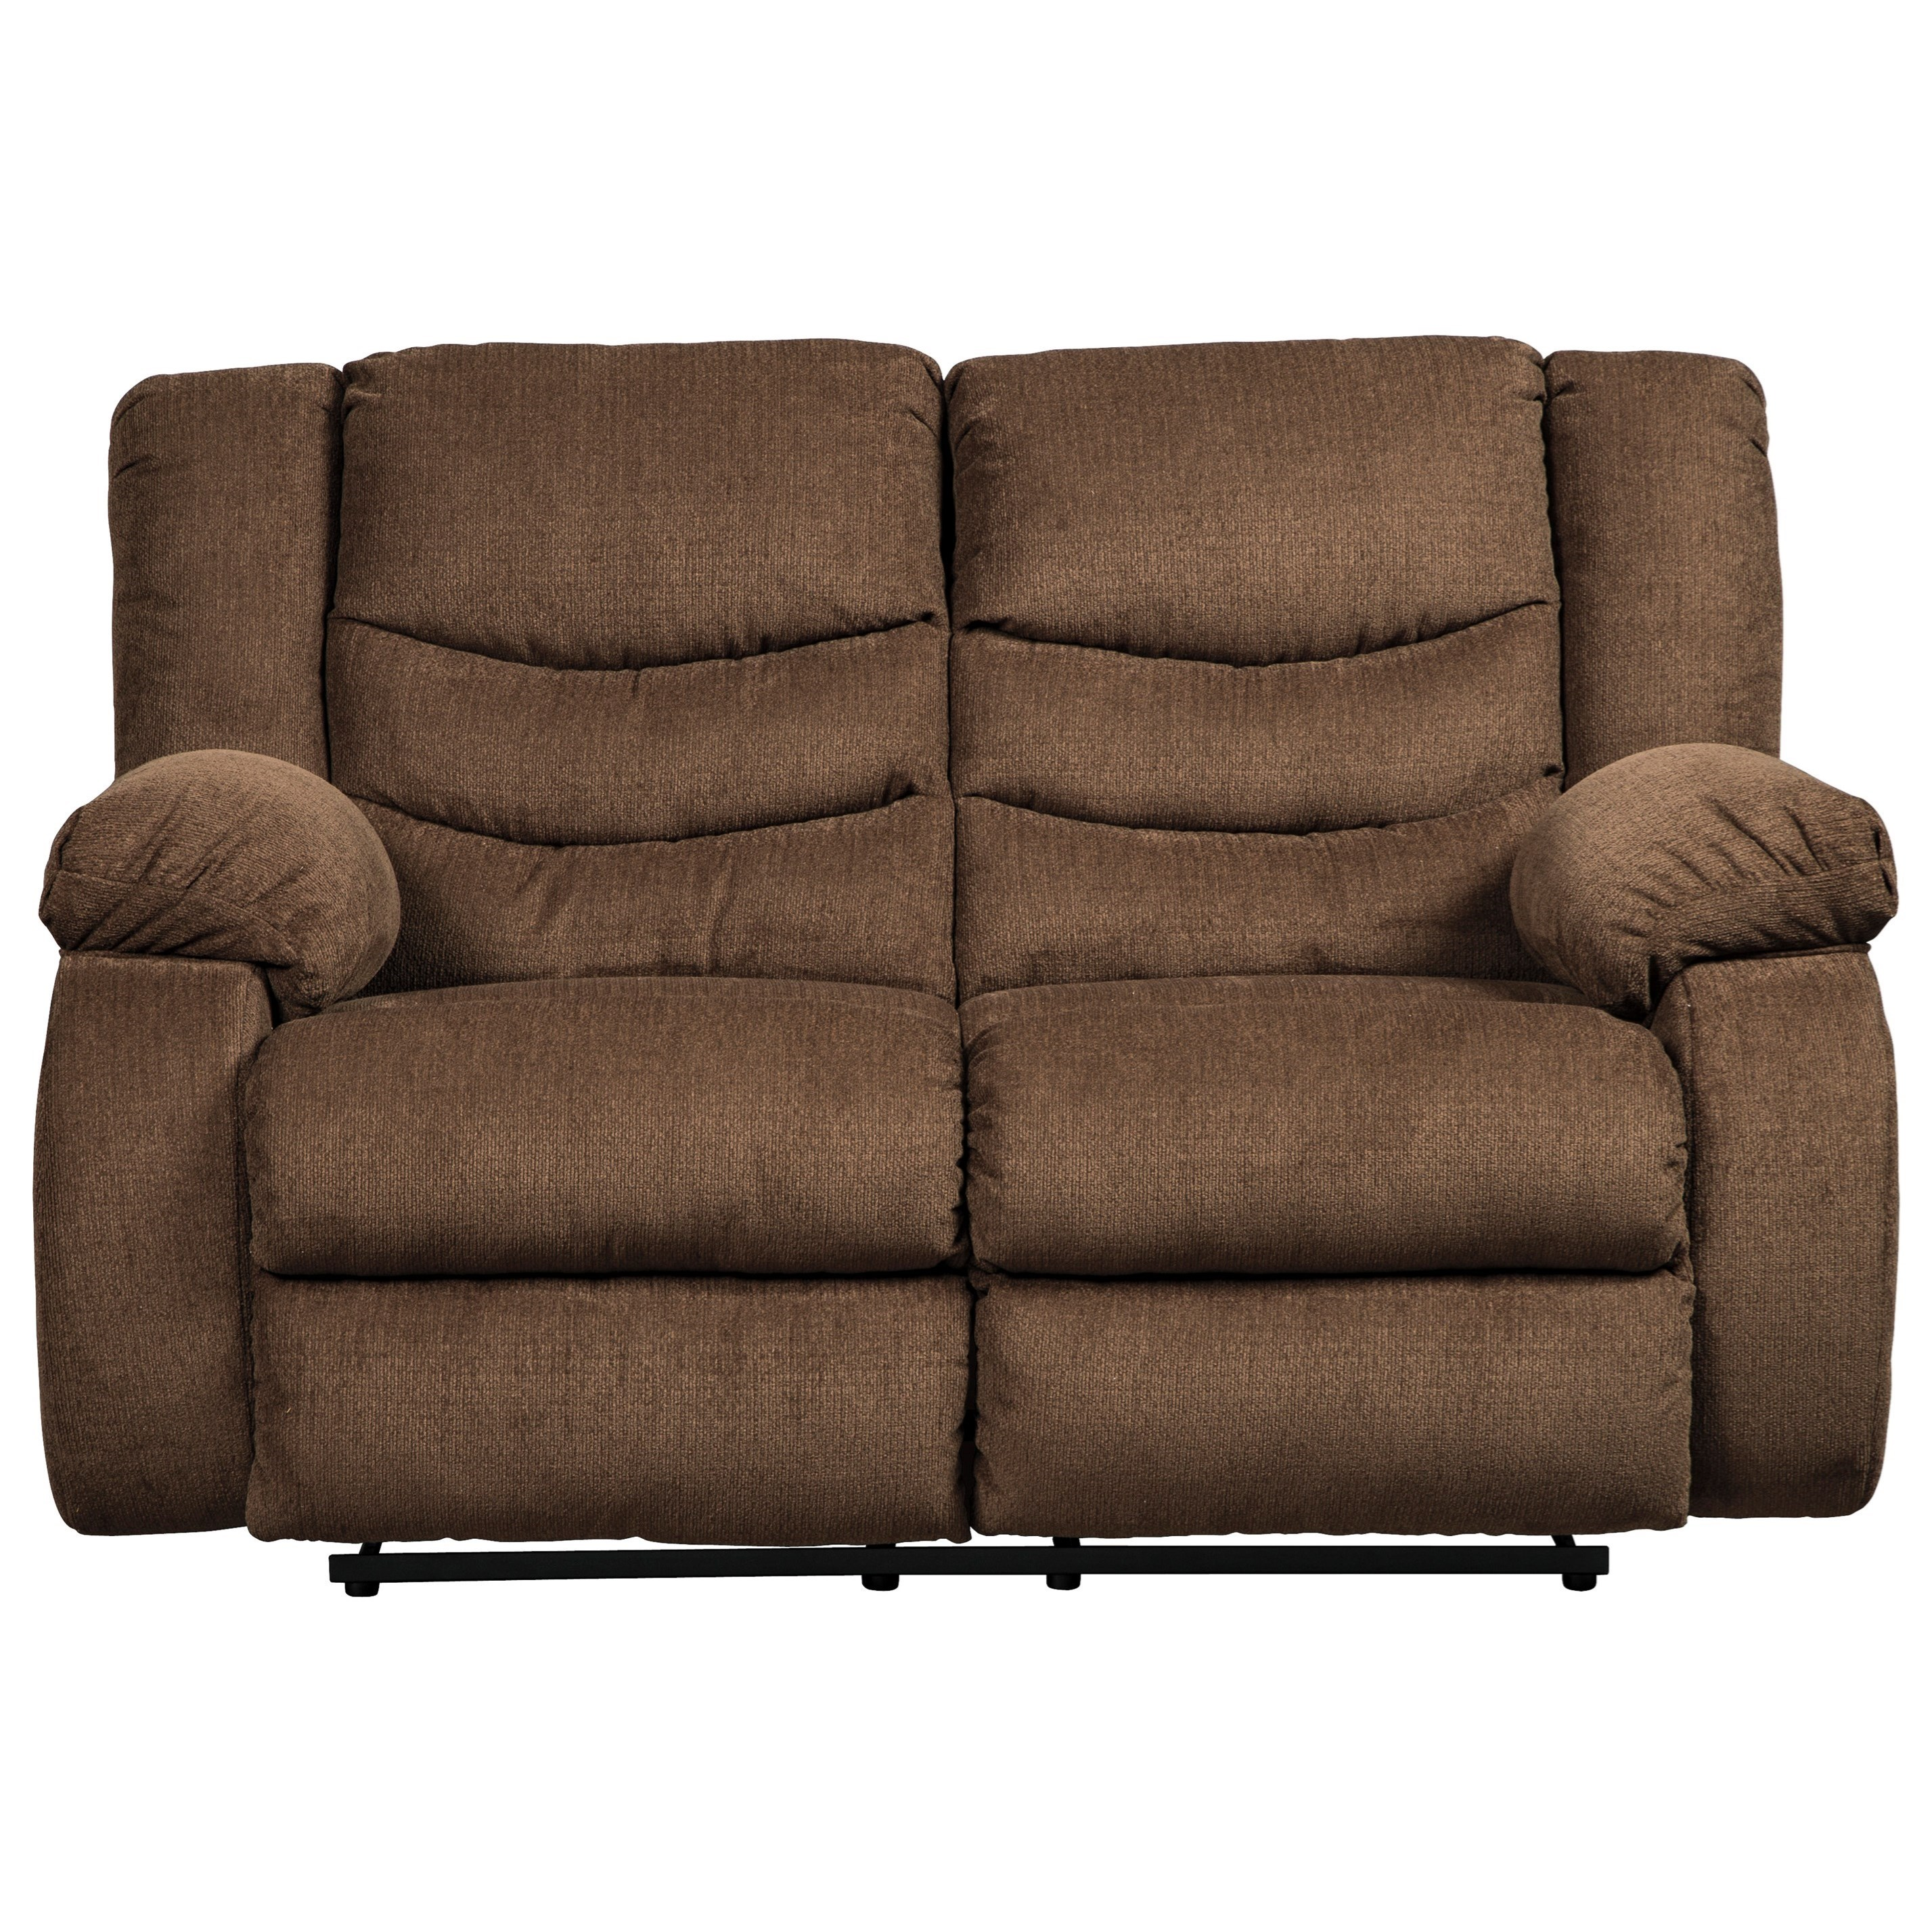 Tulen Reclining Loveseat by Signature Design by Ashley at Zak's Warehouse Clearance Center